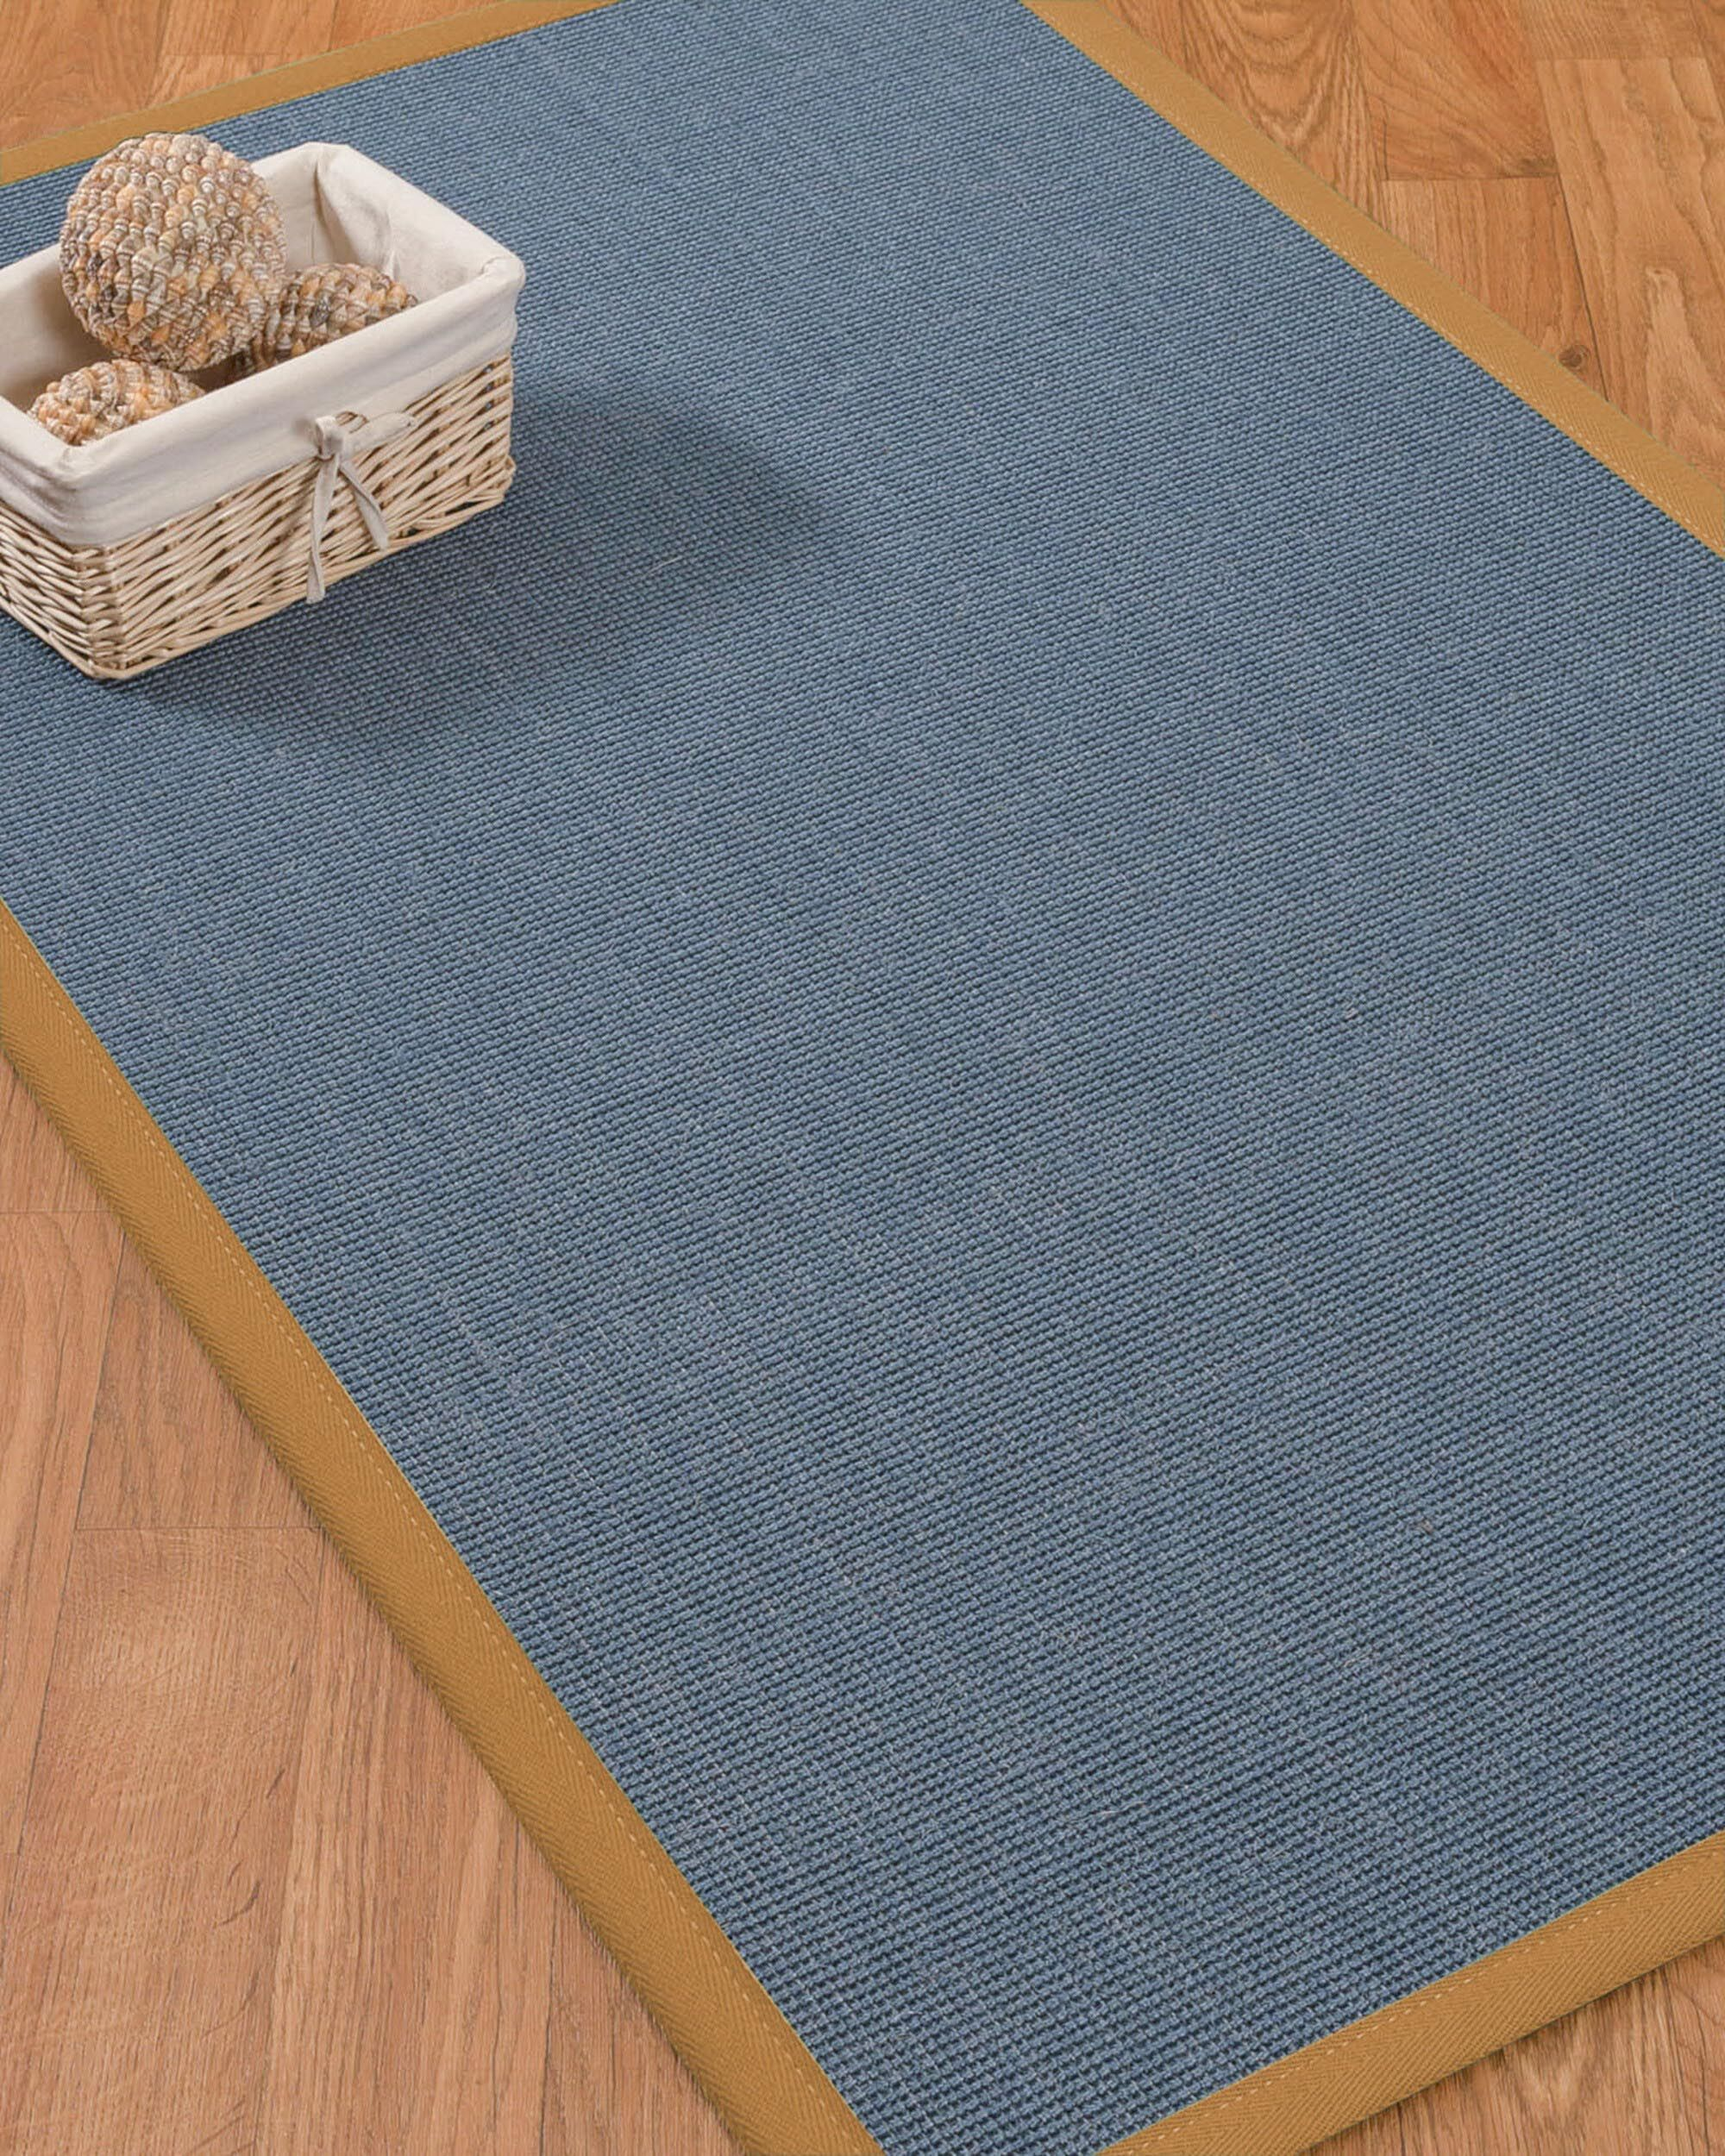 Ivy Border Hand-Woven Gray/Khaki Area Rug Rug Size: Rectangle 6' x 9', Rug Pad Included: Yes